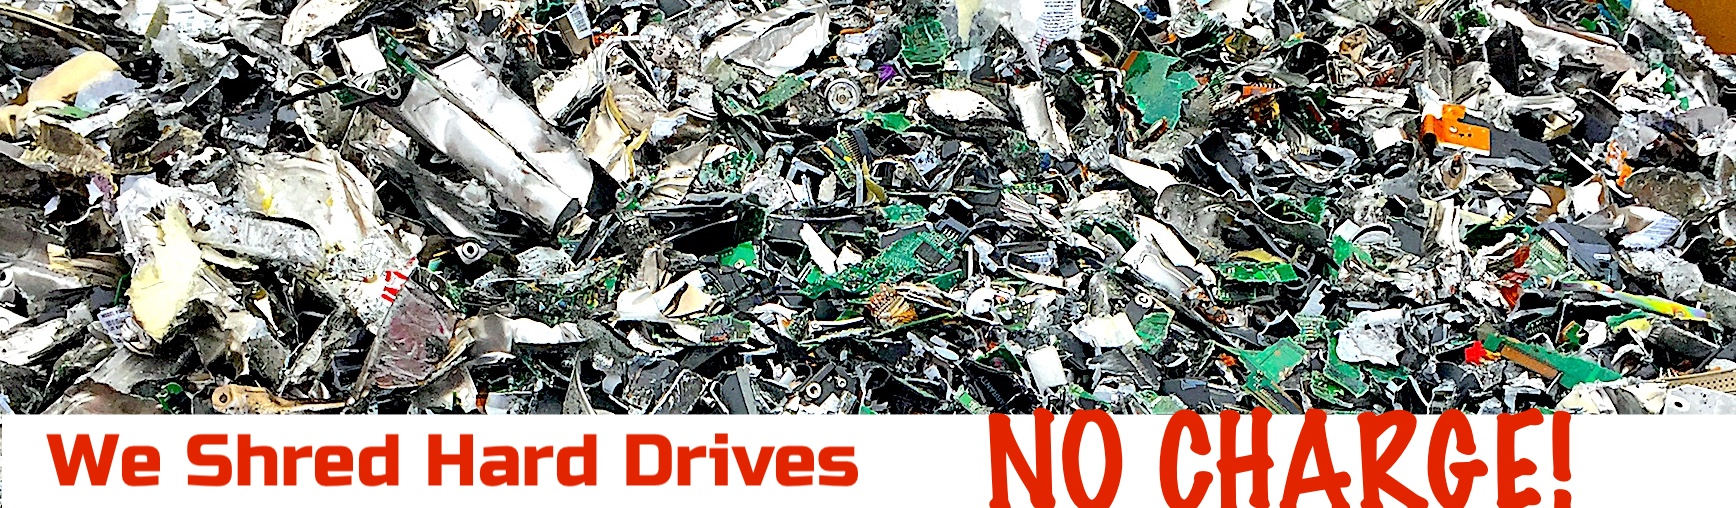 shred hard drives urban e recycling